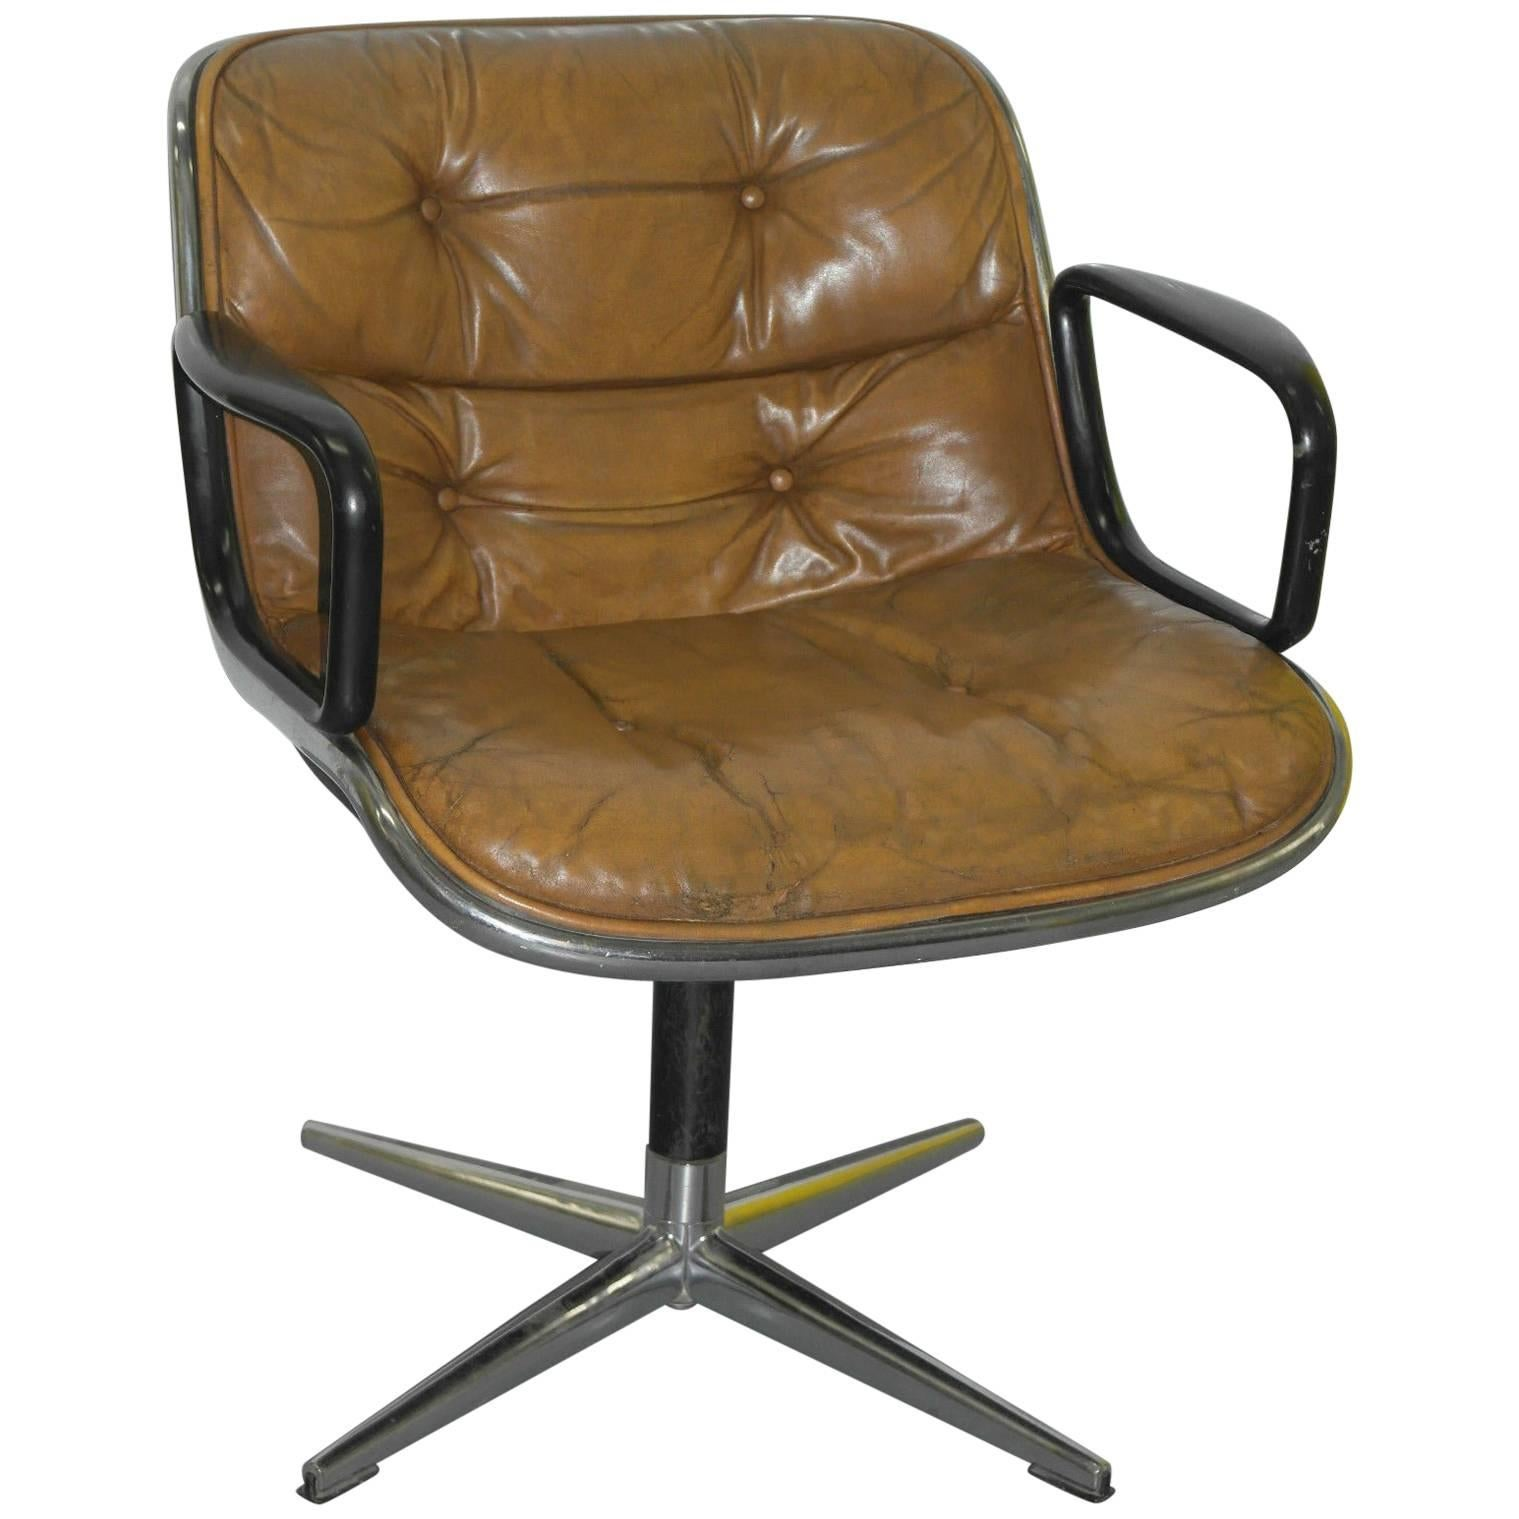 Original 1963 Knoll Charles Pollock Executive Chair With All Original  Labels For Sale